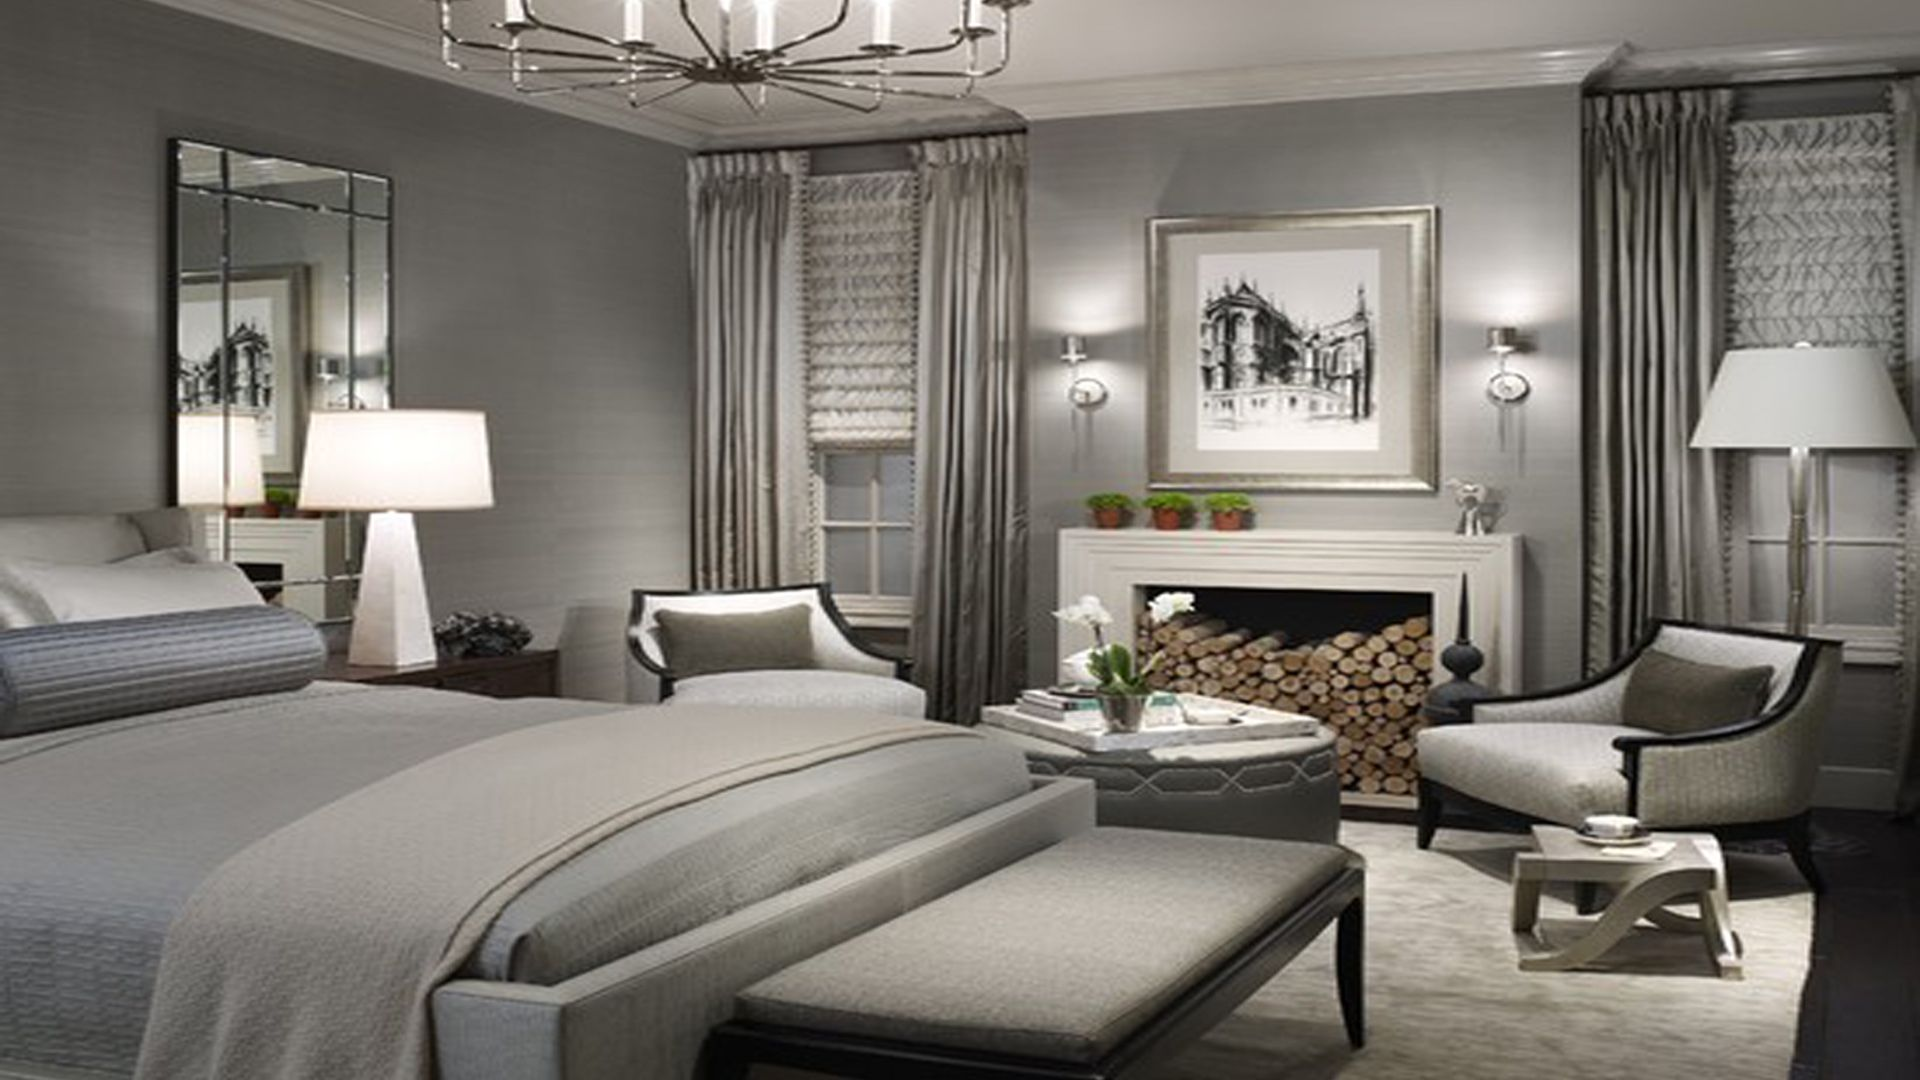 Best Excellent Grey Bedroom Walls Pictures Design Inspirations 640 x 480